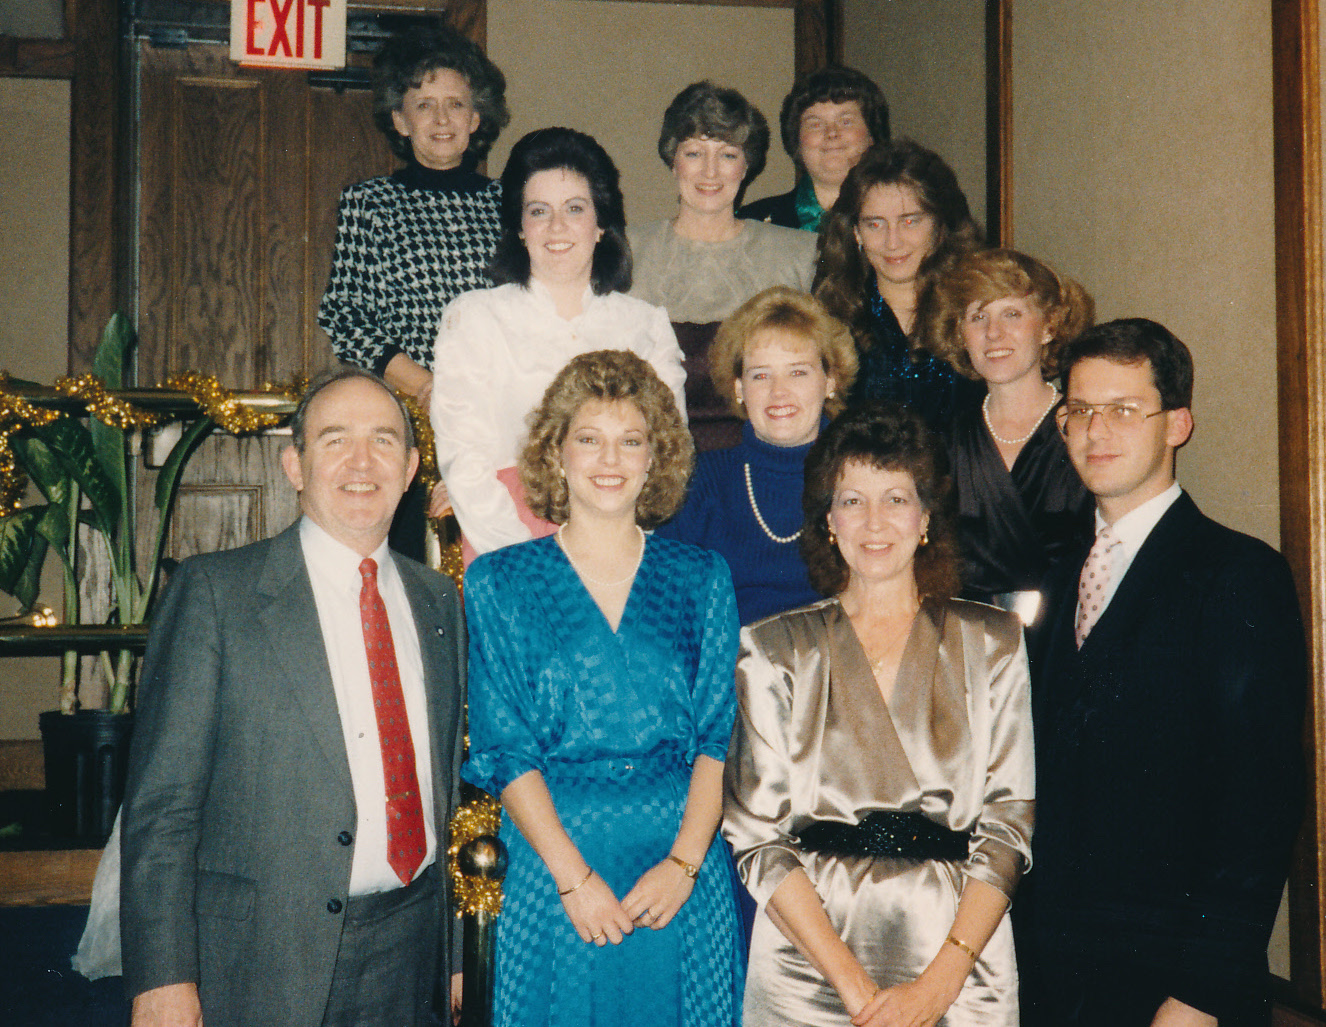 Here is a throwback photo of staff from the 1980s.